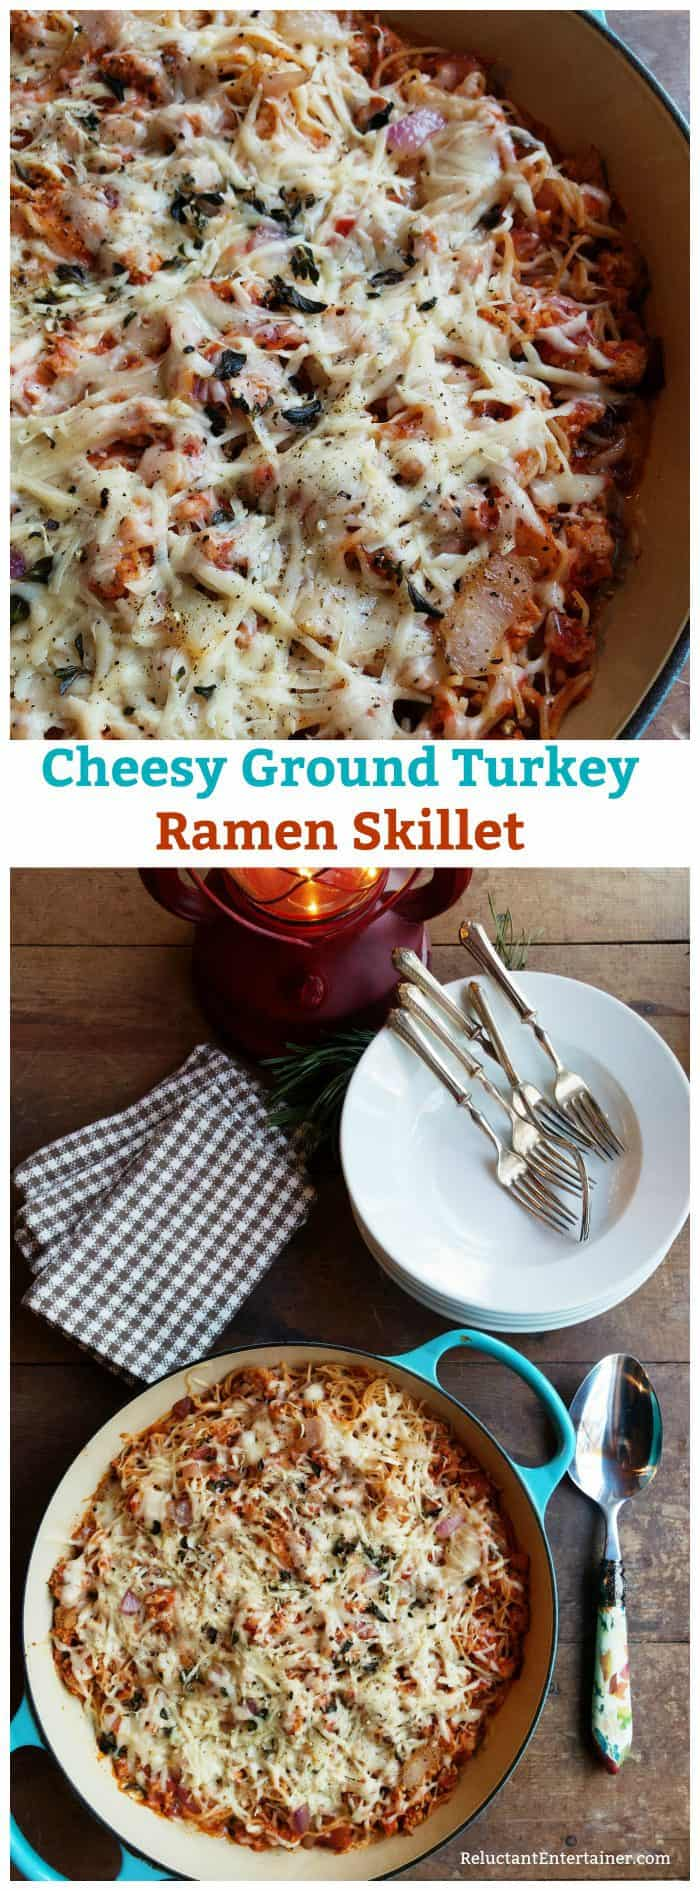 Cheesy Ground Turkey Ramen Skillet Recipe